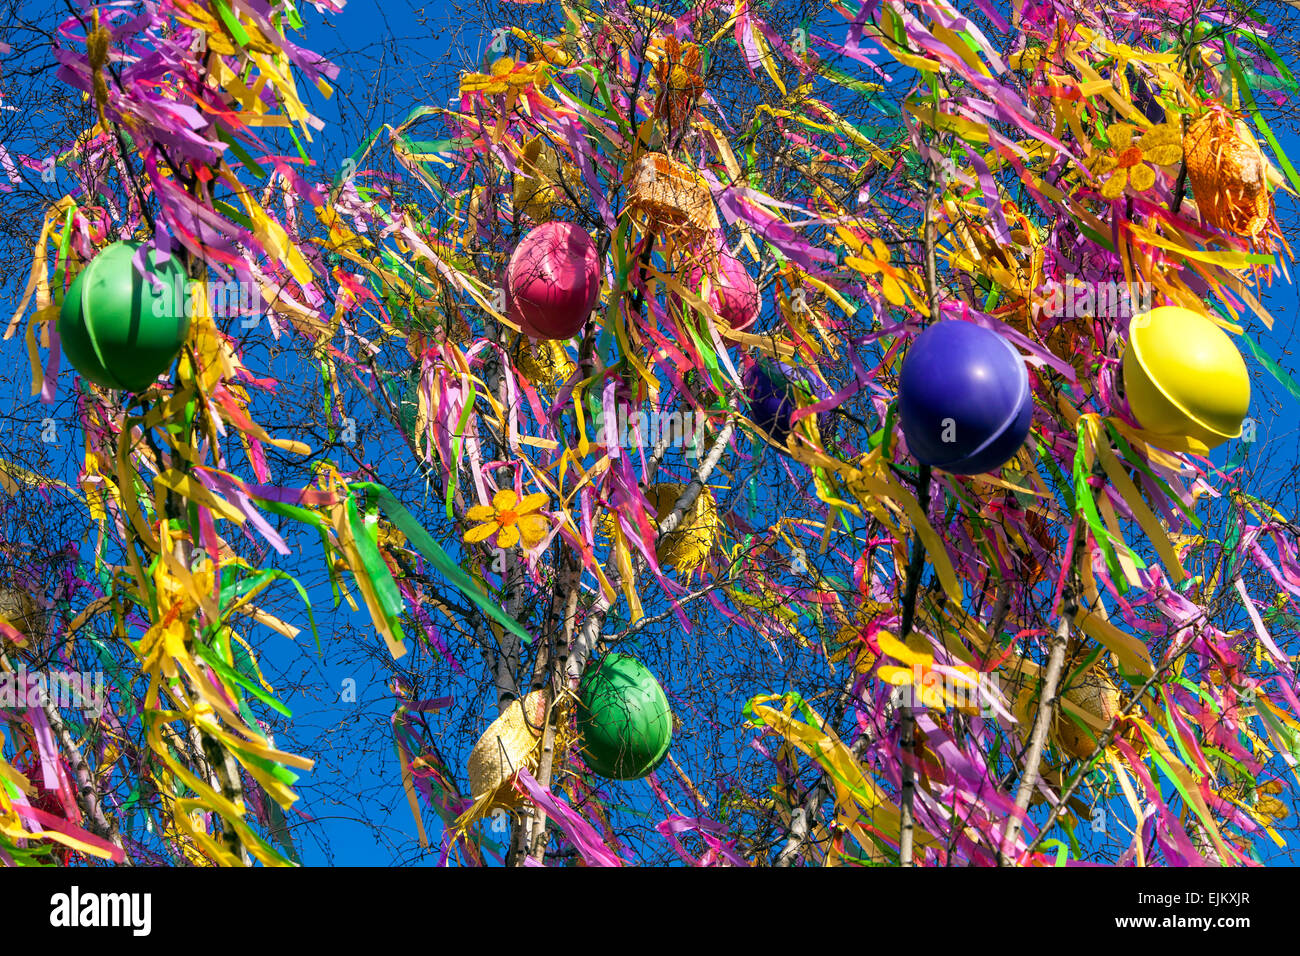 A colorfully decorated tree, Easter eggs, traditions, holidays, Old Town Square Prague Czech Republic - Stock Image